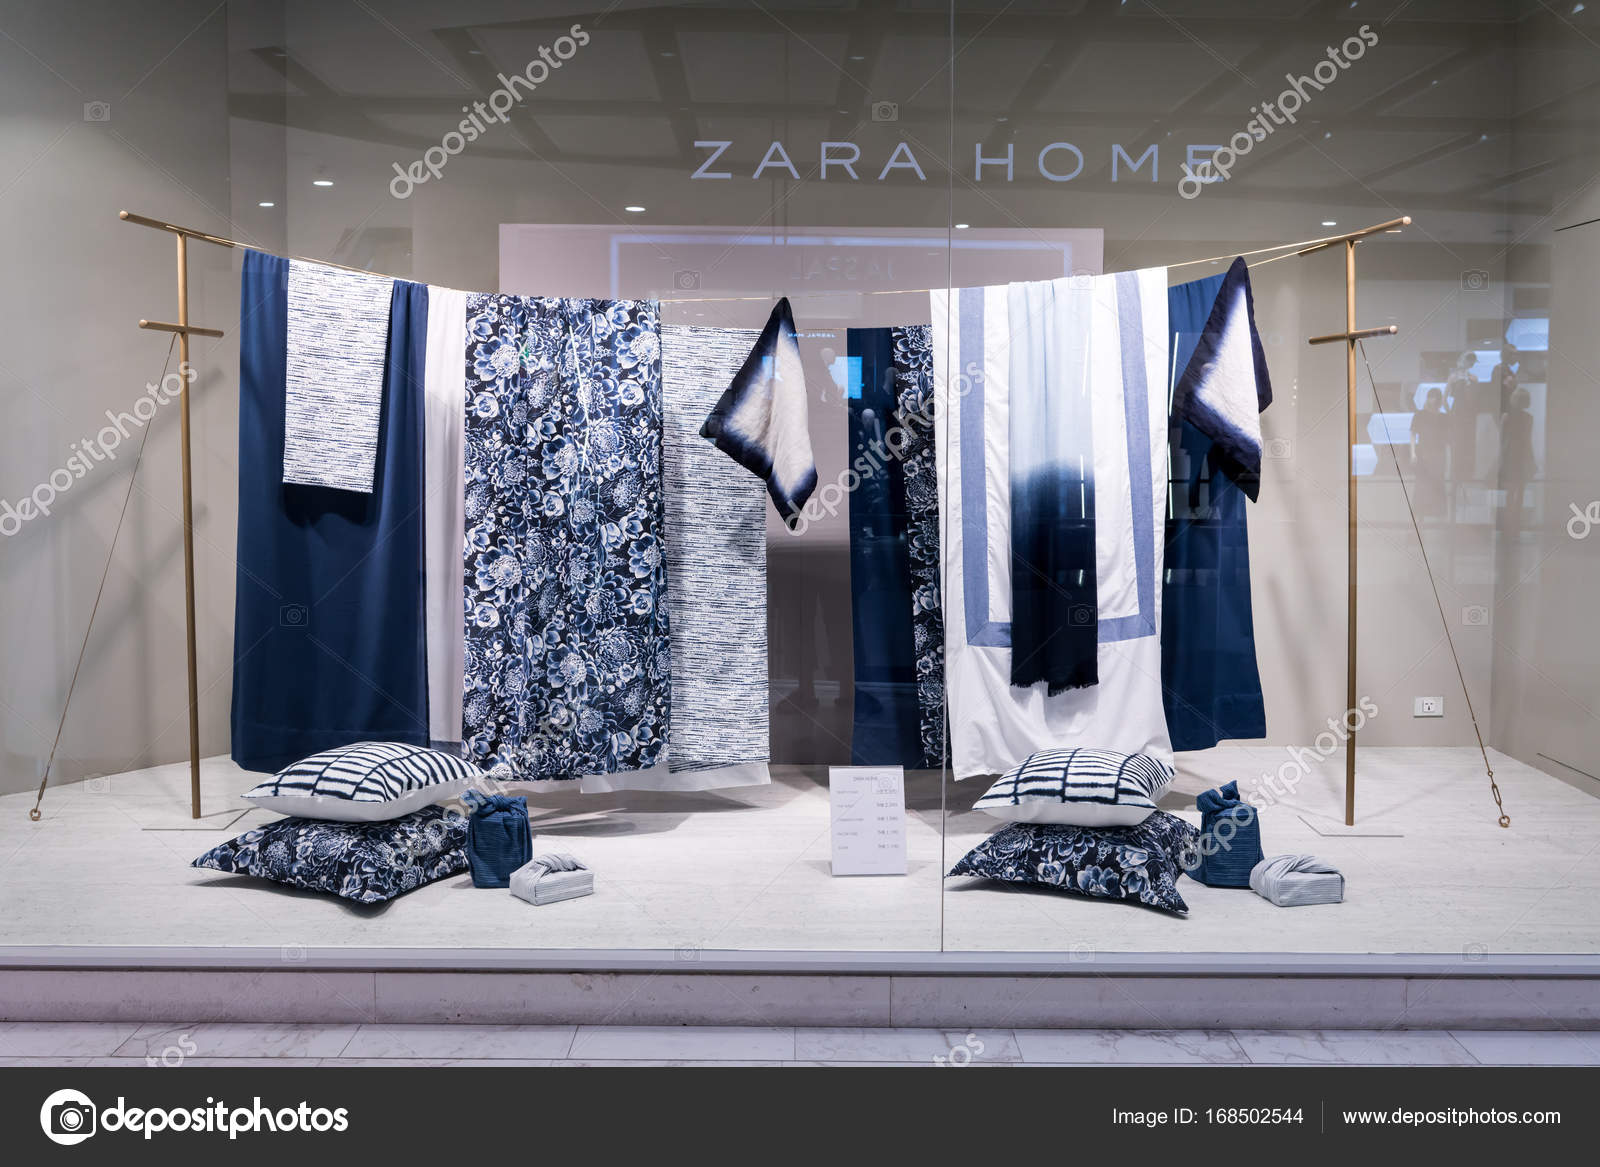 Zara Home Shop At Emquatier, Bangkok, Thailand, Sep 2, 2017 : Luxury And  Fashionable Brand Window Display Of New Collection Of Home Decoration And  Beding.